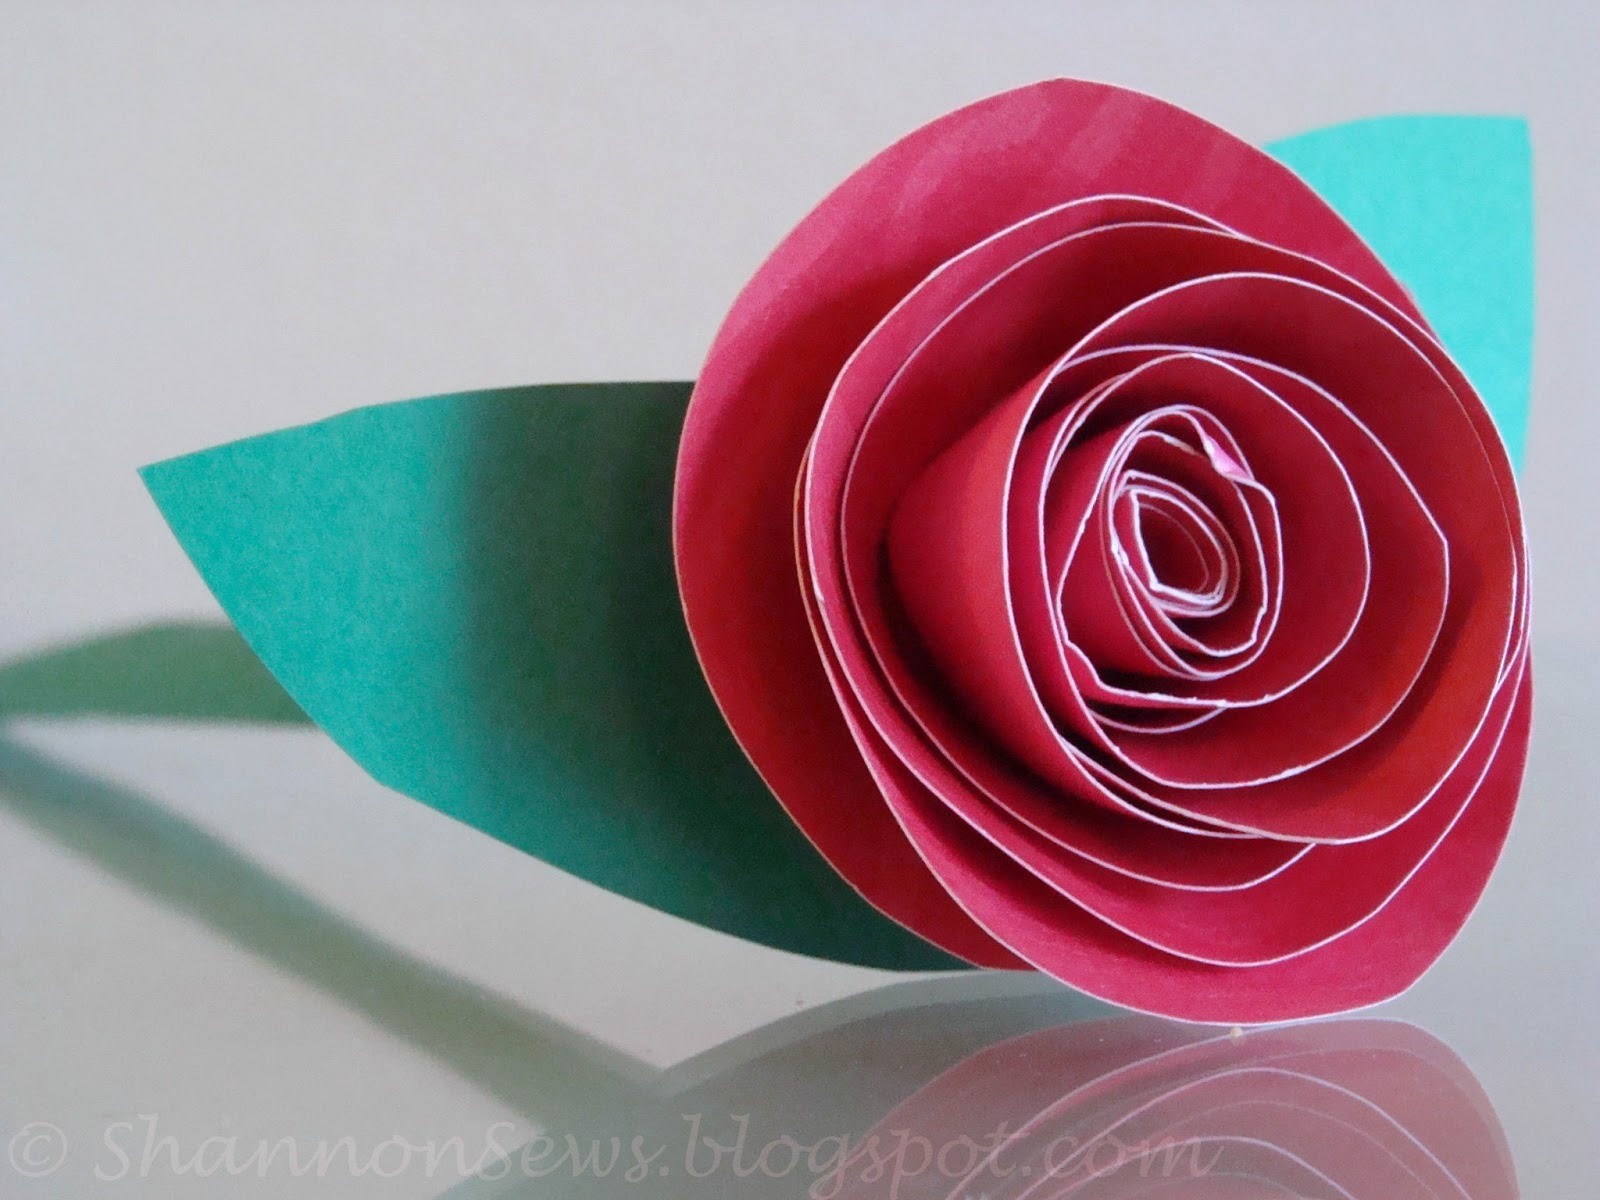 How to make a rose out of printing paper